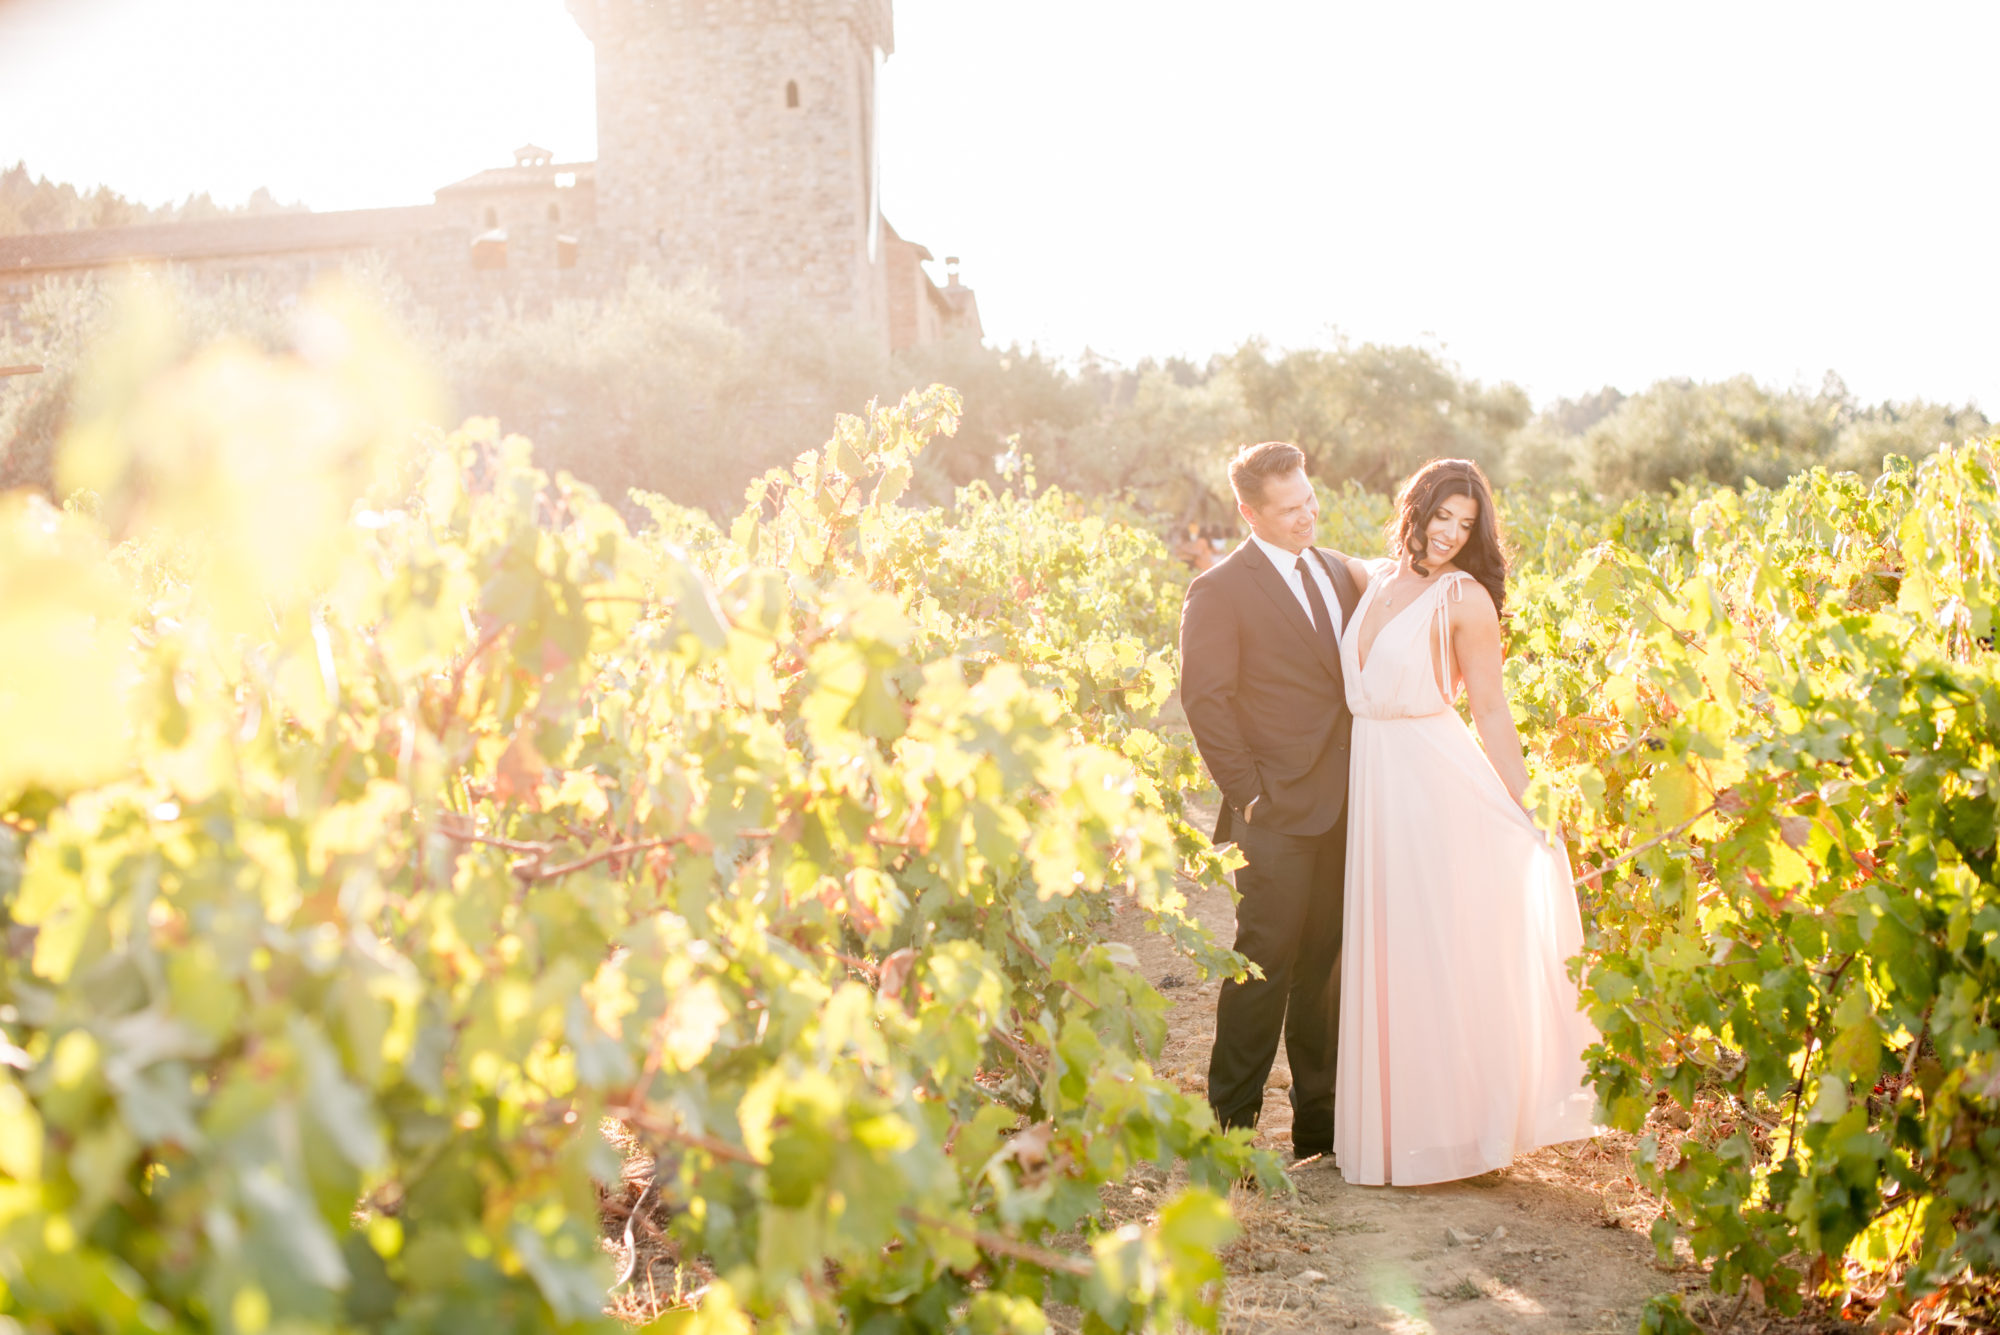 Holly D Photography - Napa Valley Wedding Photographer